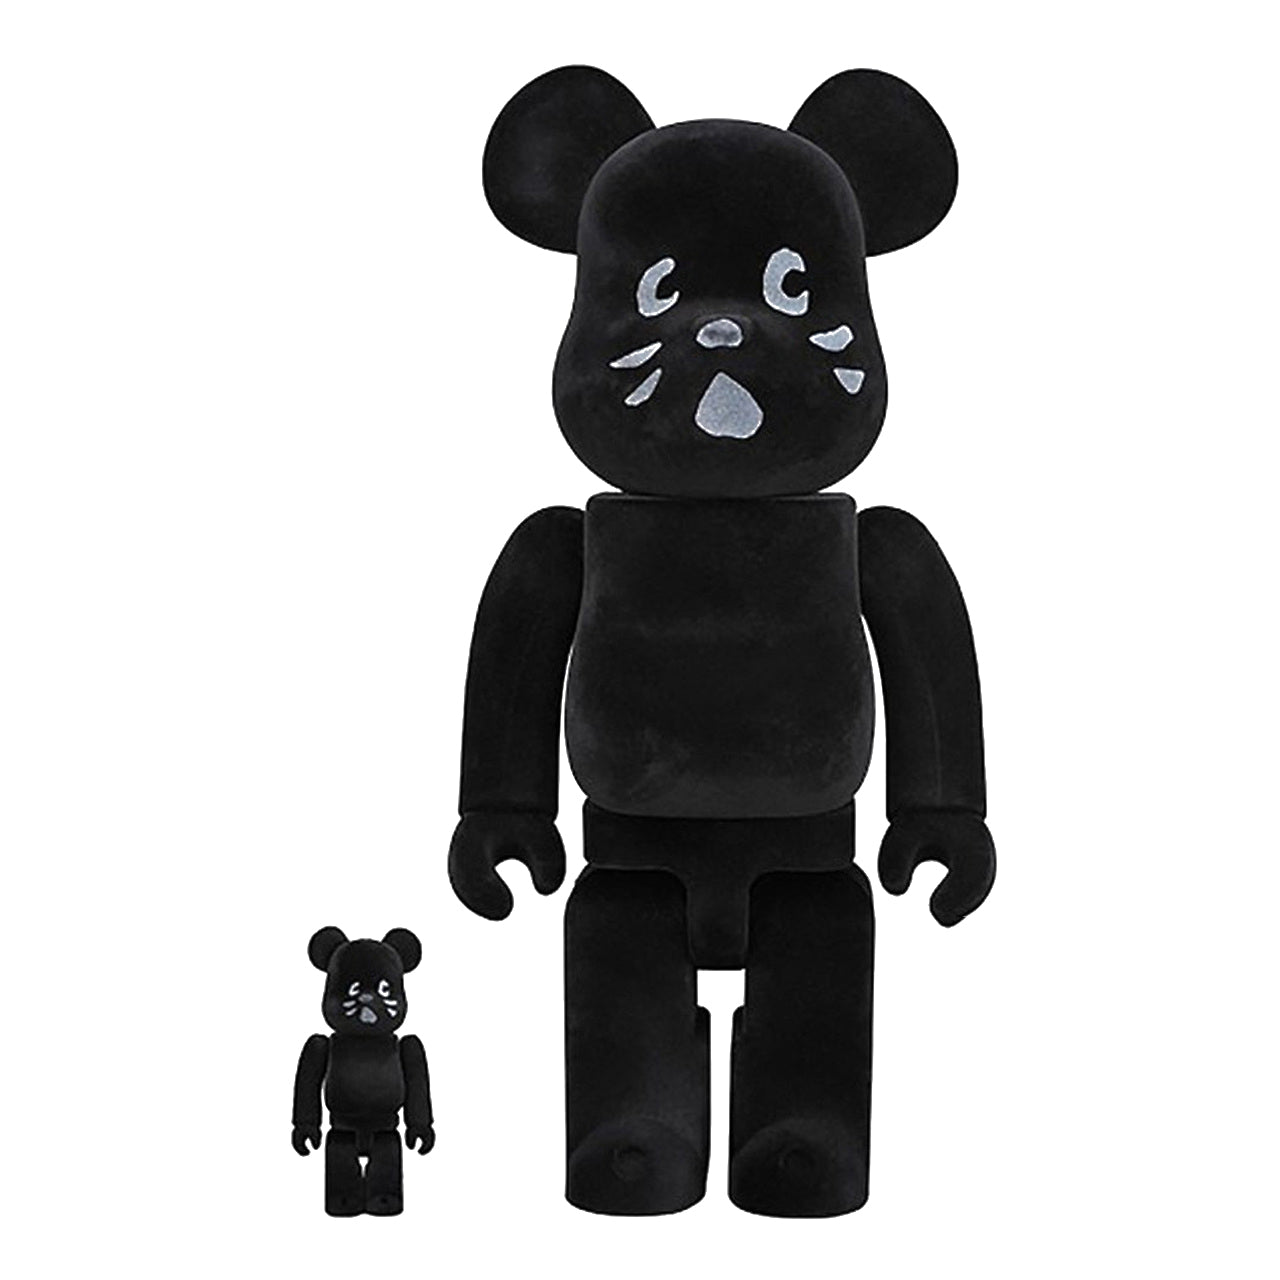 Nya Cat Flocky 100% & 400% BEARBRICK SET by Medicom Toy